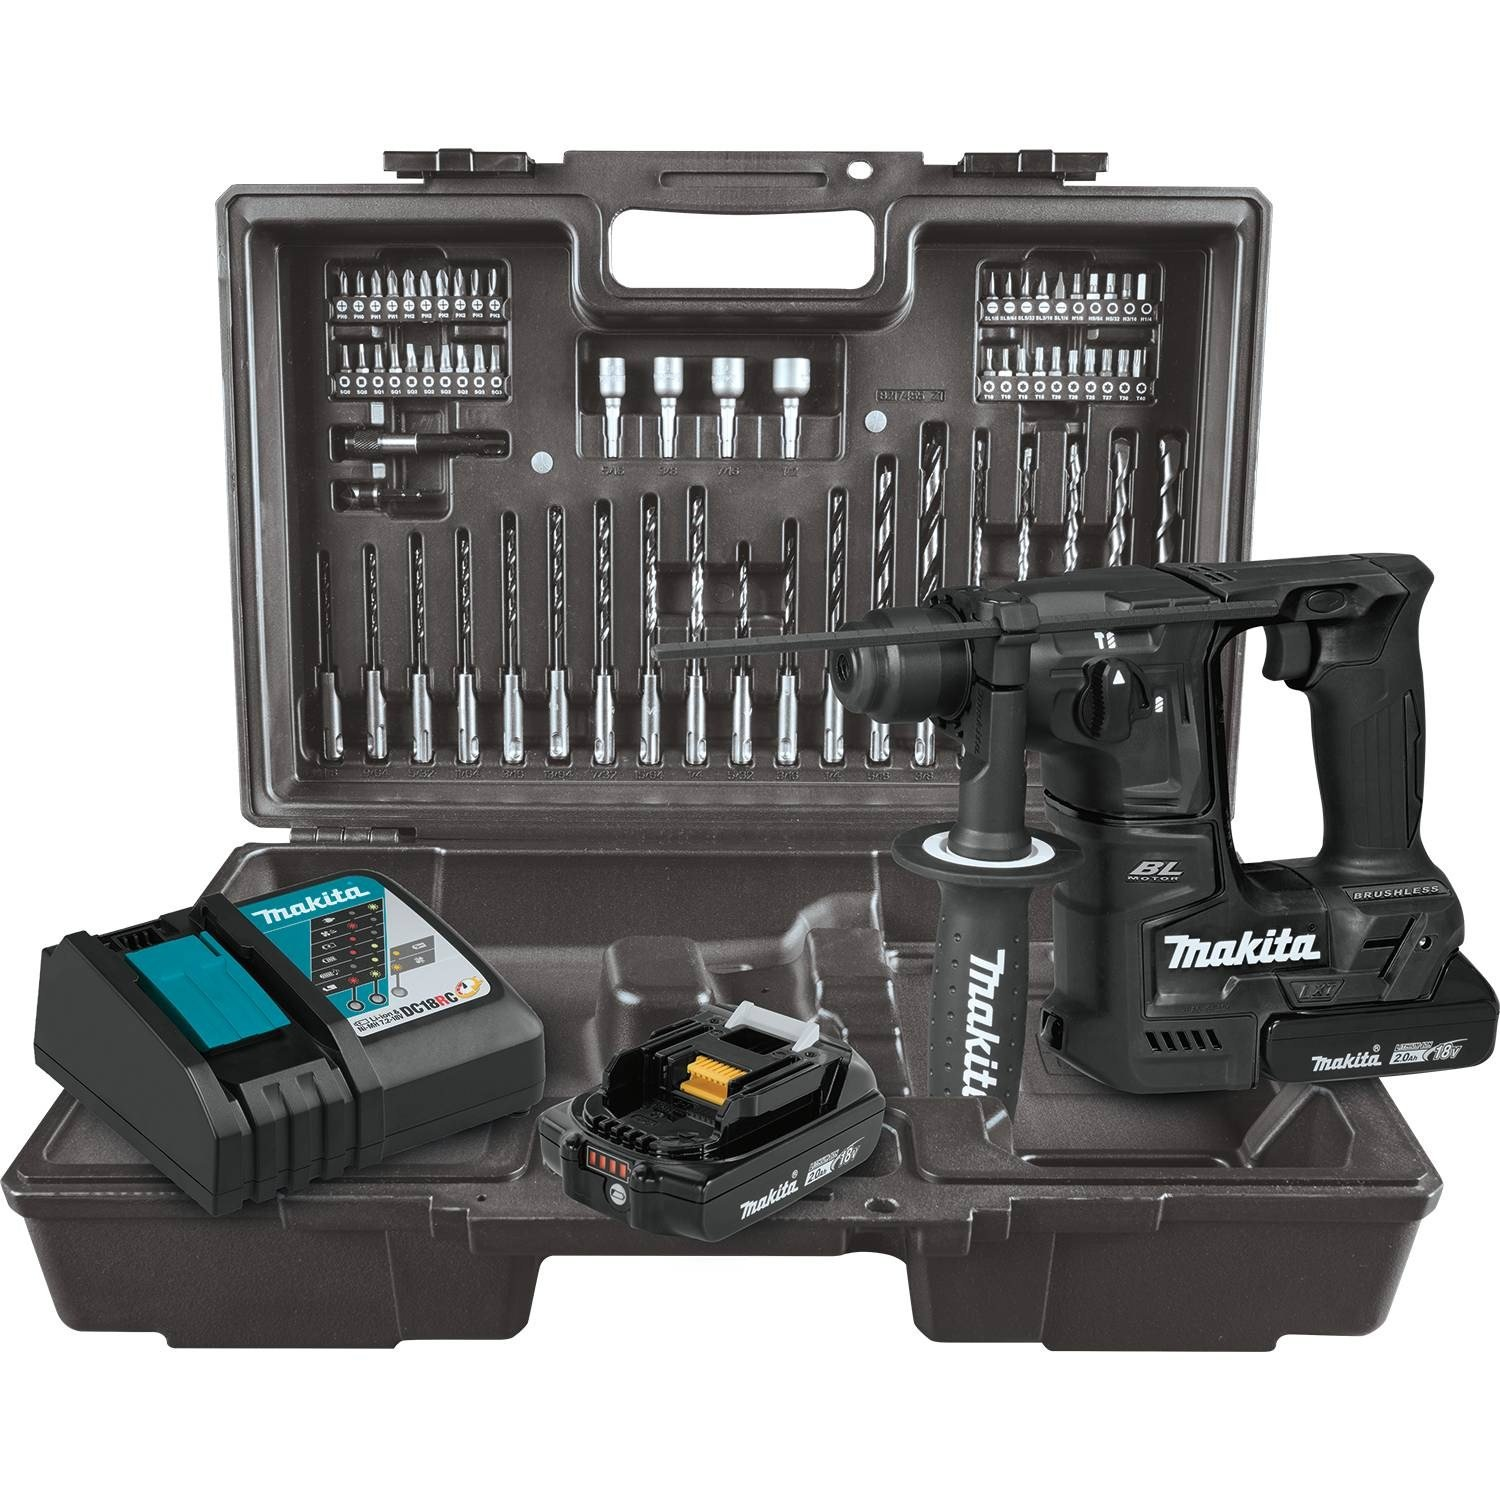 Makita XRH06RBX 18V LXT Lithium-Ion Sub-Compact Brushless Cordless 11 16 Rotary Hammer Kit, accepts SDS-PLUS bits, 65 Pc. Accessory Set 2.0 Ah